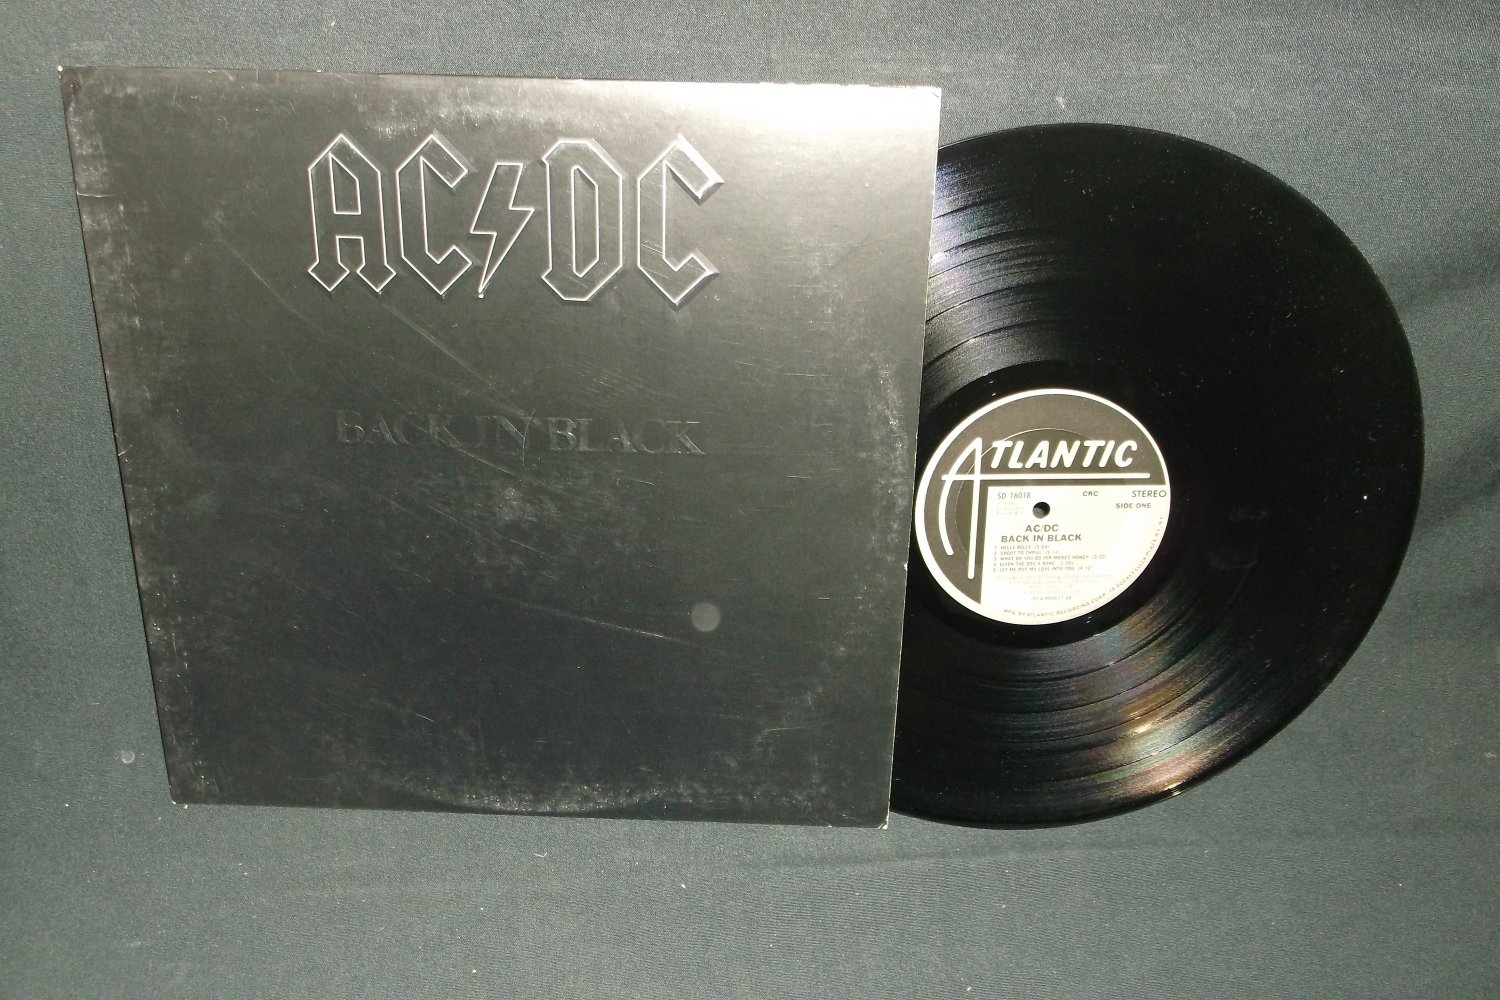 AC/DC - Back In Black - ATLANTIC 16018 - Rock Record LP